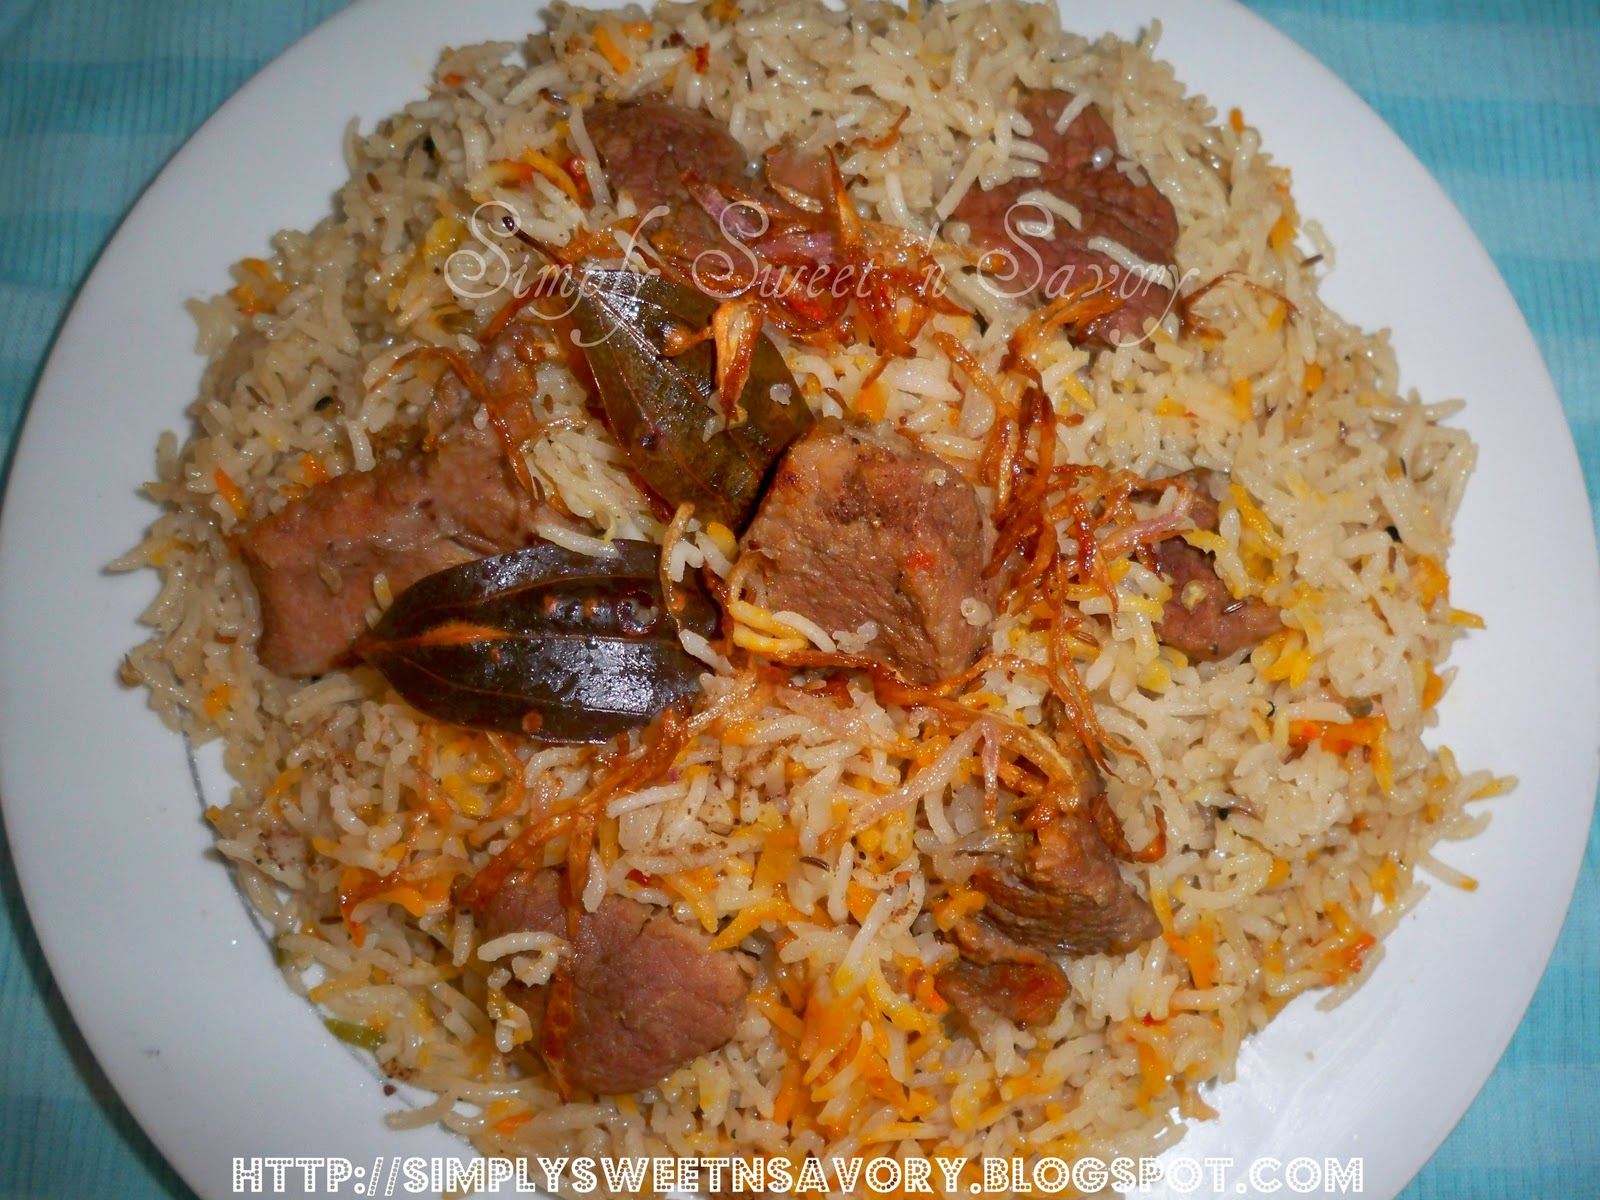 Simply Sweet 'n Savory: Mutton Yakhni Pulao (Mutton Pilaf)